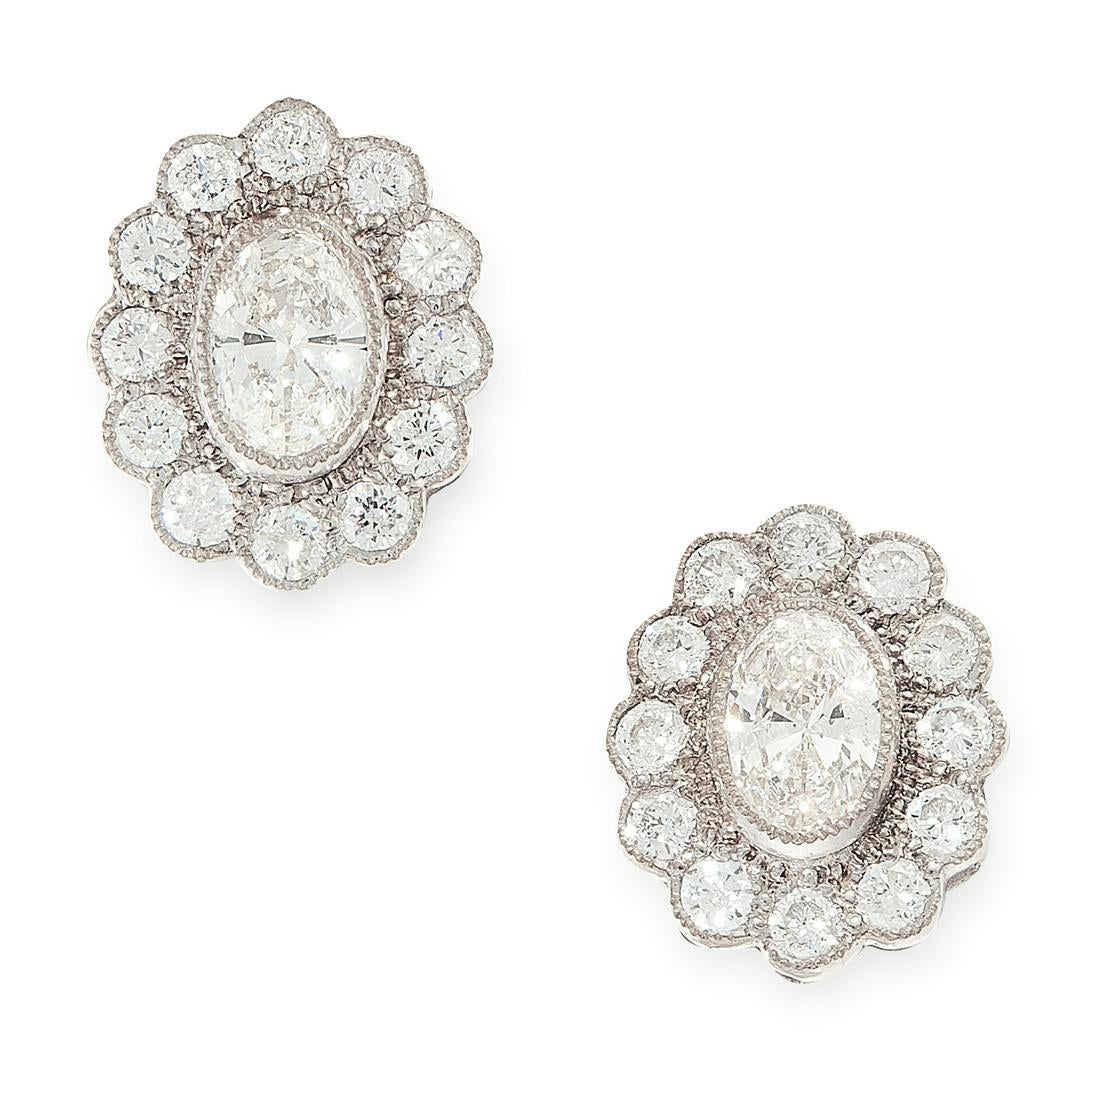 A PAIR OF DIAMOND CLUSTER STUD EARRINGS in 18ct white gold, each set with an oval cut diamond within